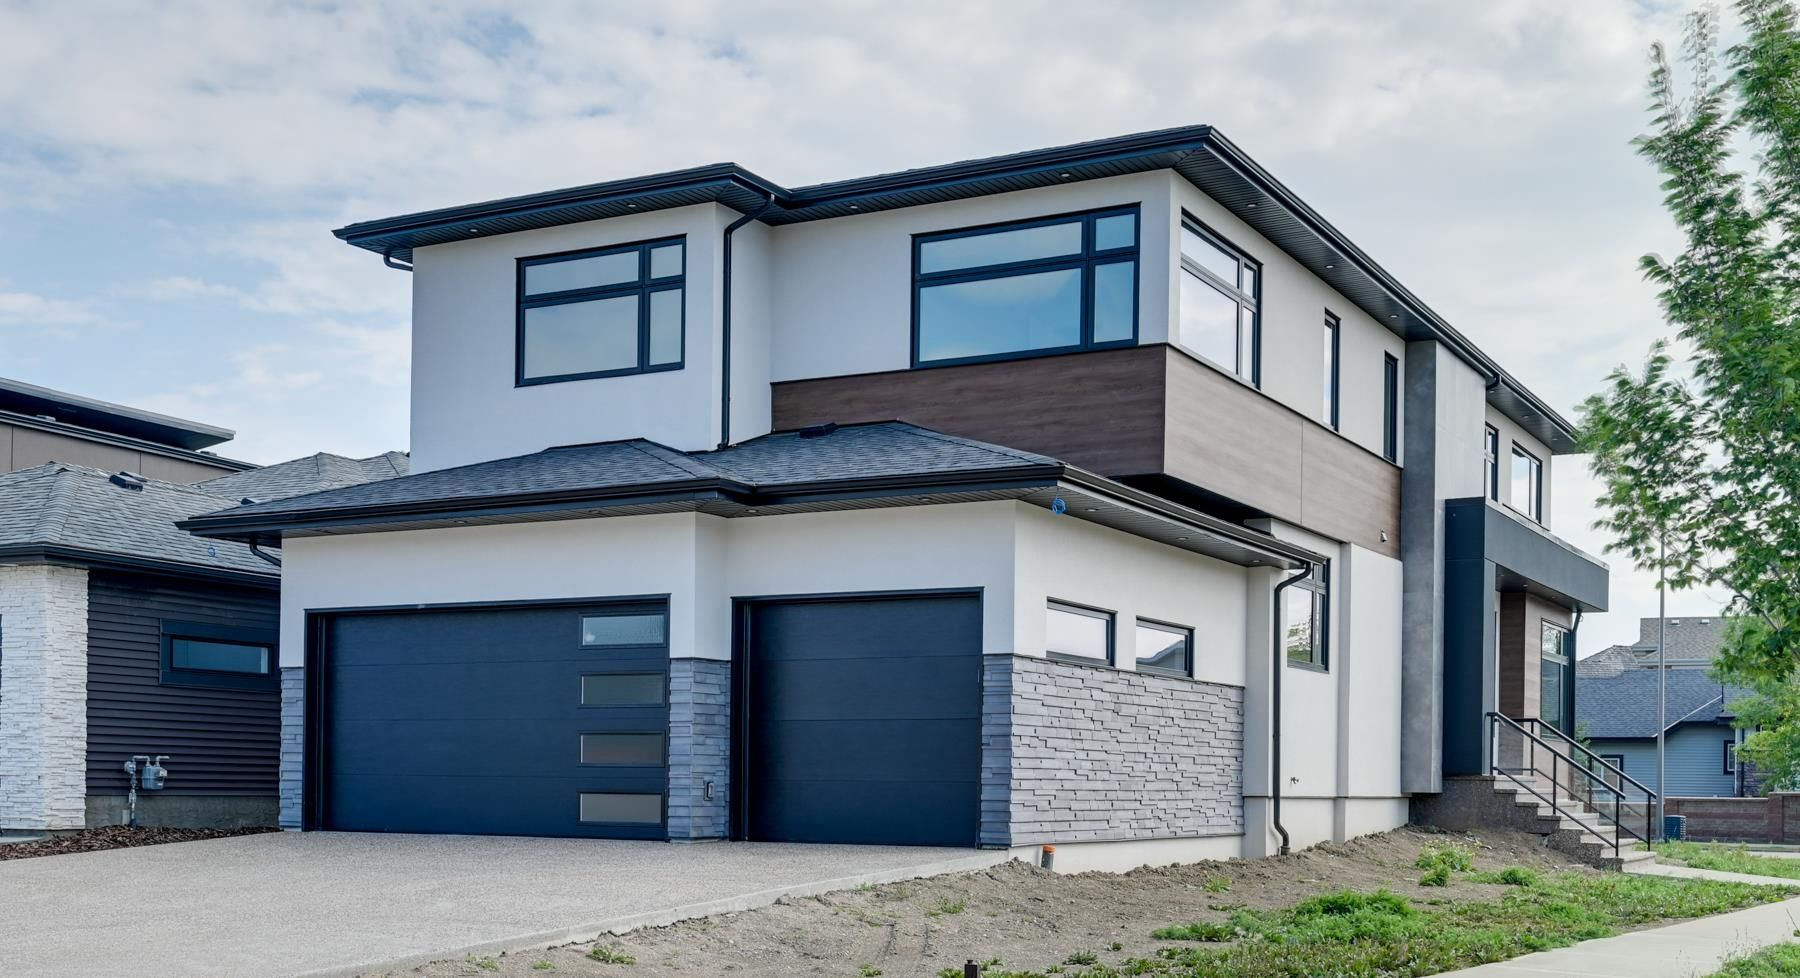 Main Photo: 1303 CLEMENT Court in Edmonton: Zone 20 House for sale : MLS®# E4262296